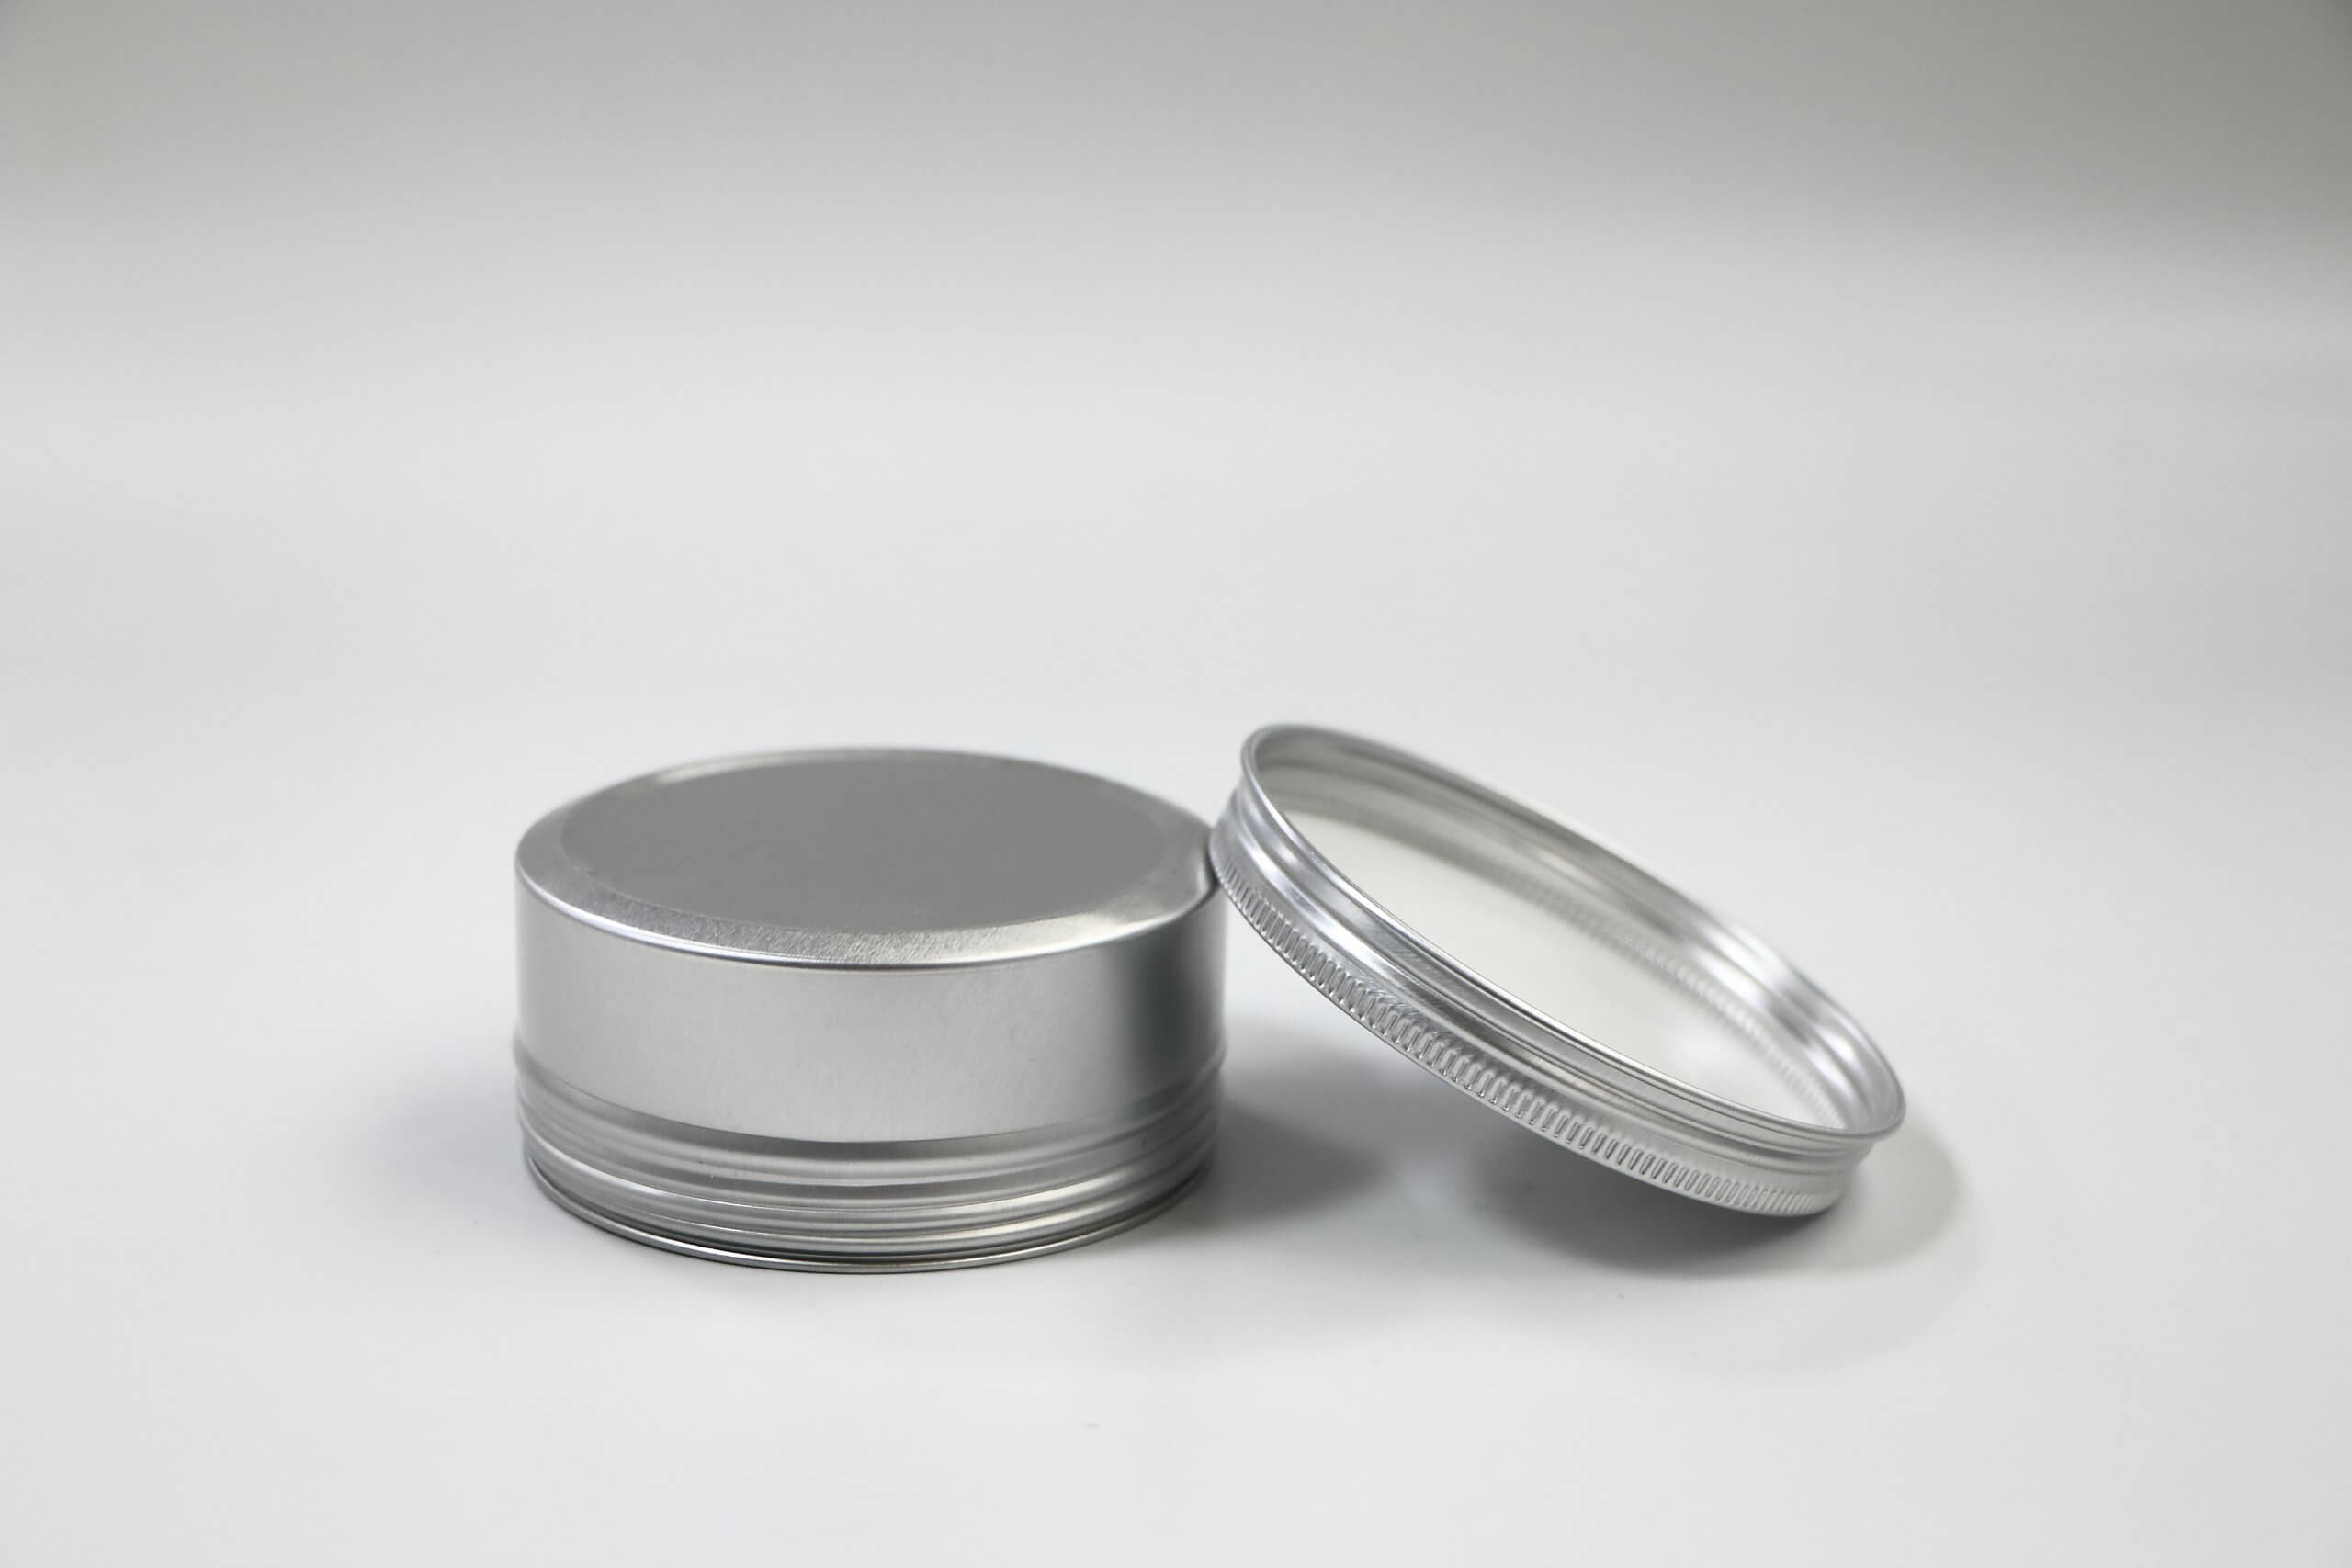 YX AL243 scaled - Aluminum Tin Jars Round Pot Screw Cap Lid for Lip Balm Nail Art Cream Cosmetic Make Up Eye Shadow Powder Pot Jar Tin Case Container